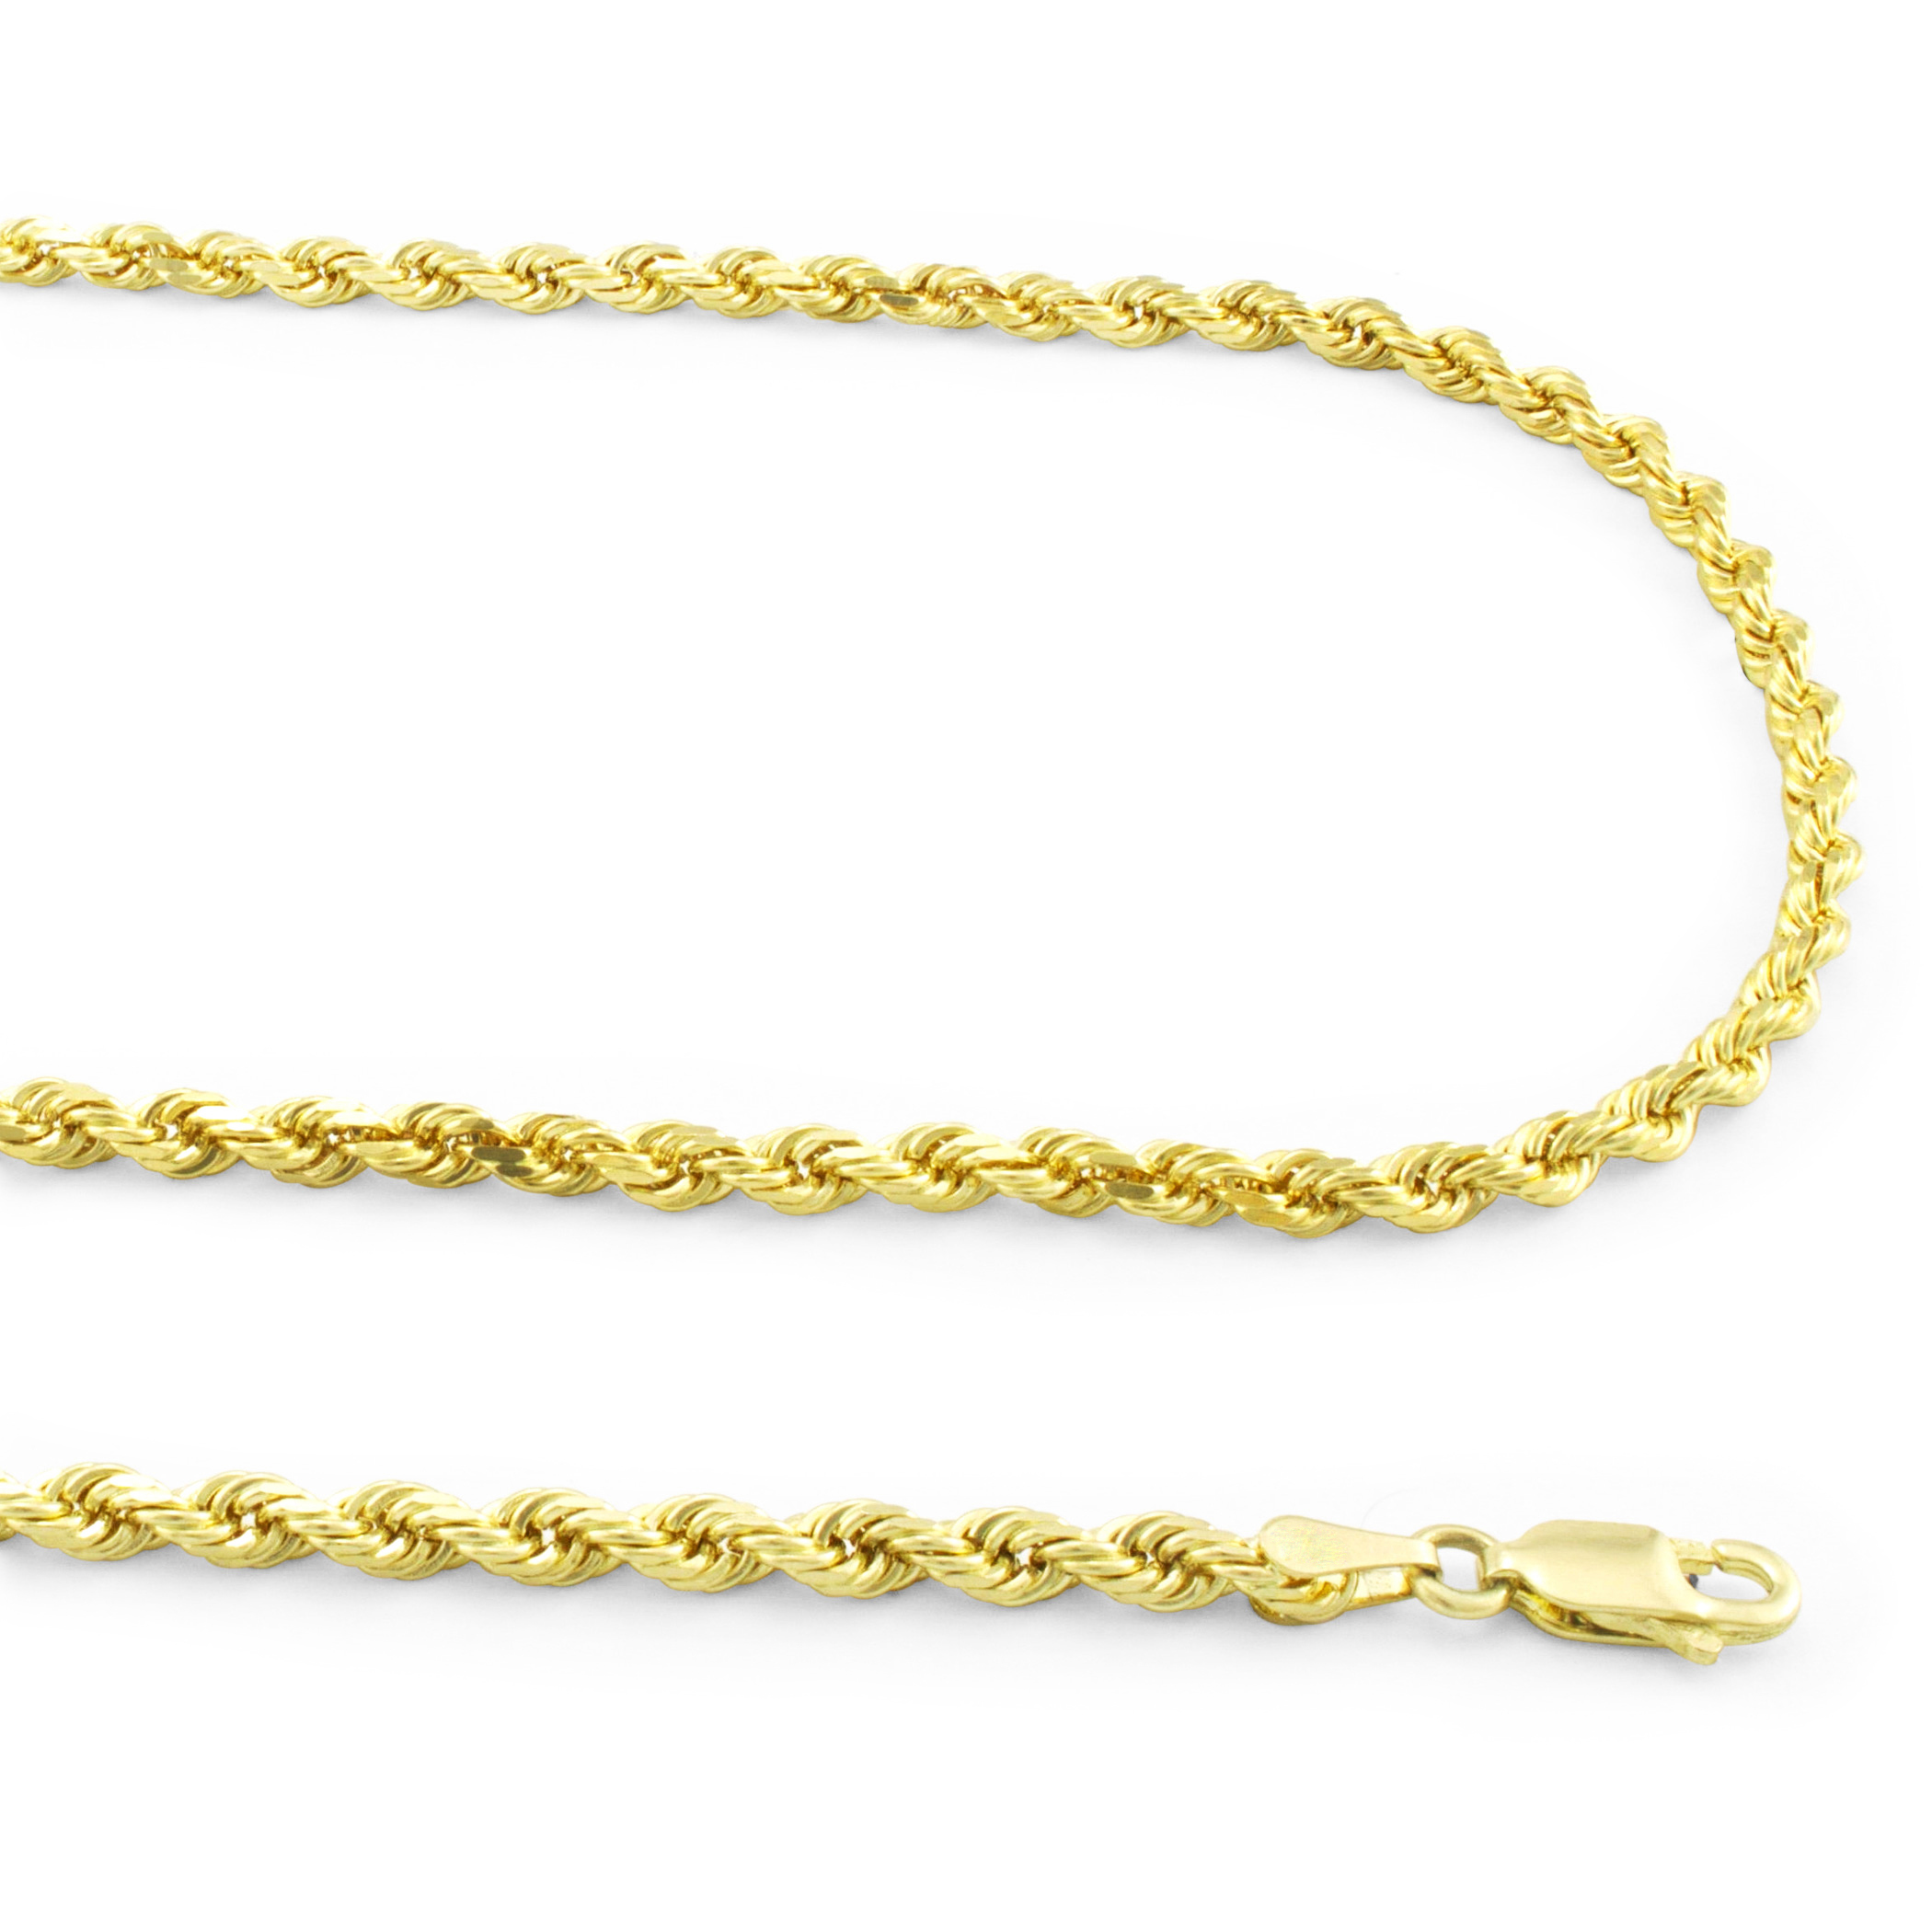 Real-14K-Yellow-Gold-3mm-Diamond-Cut-Rope-Chain-Necklace-Lobster-Clasp-18-034-30-034 thumbnail 13